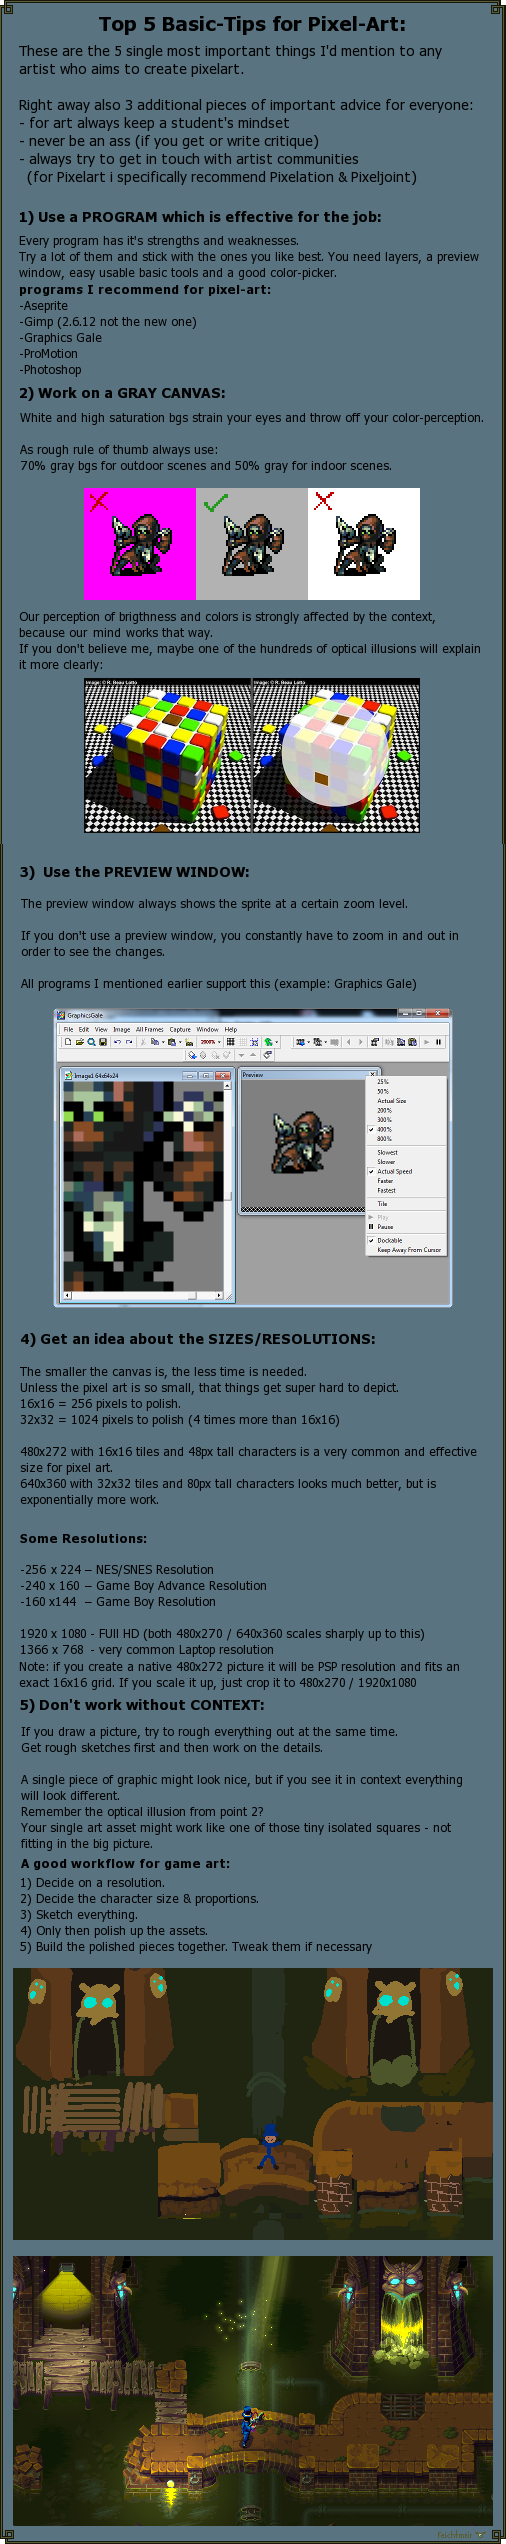 Top 5 Basic Tips For Pixel Art By Cyangmou On Deviantart